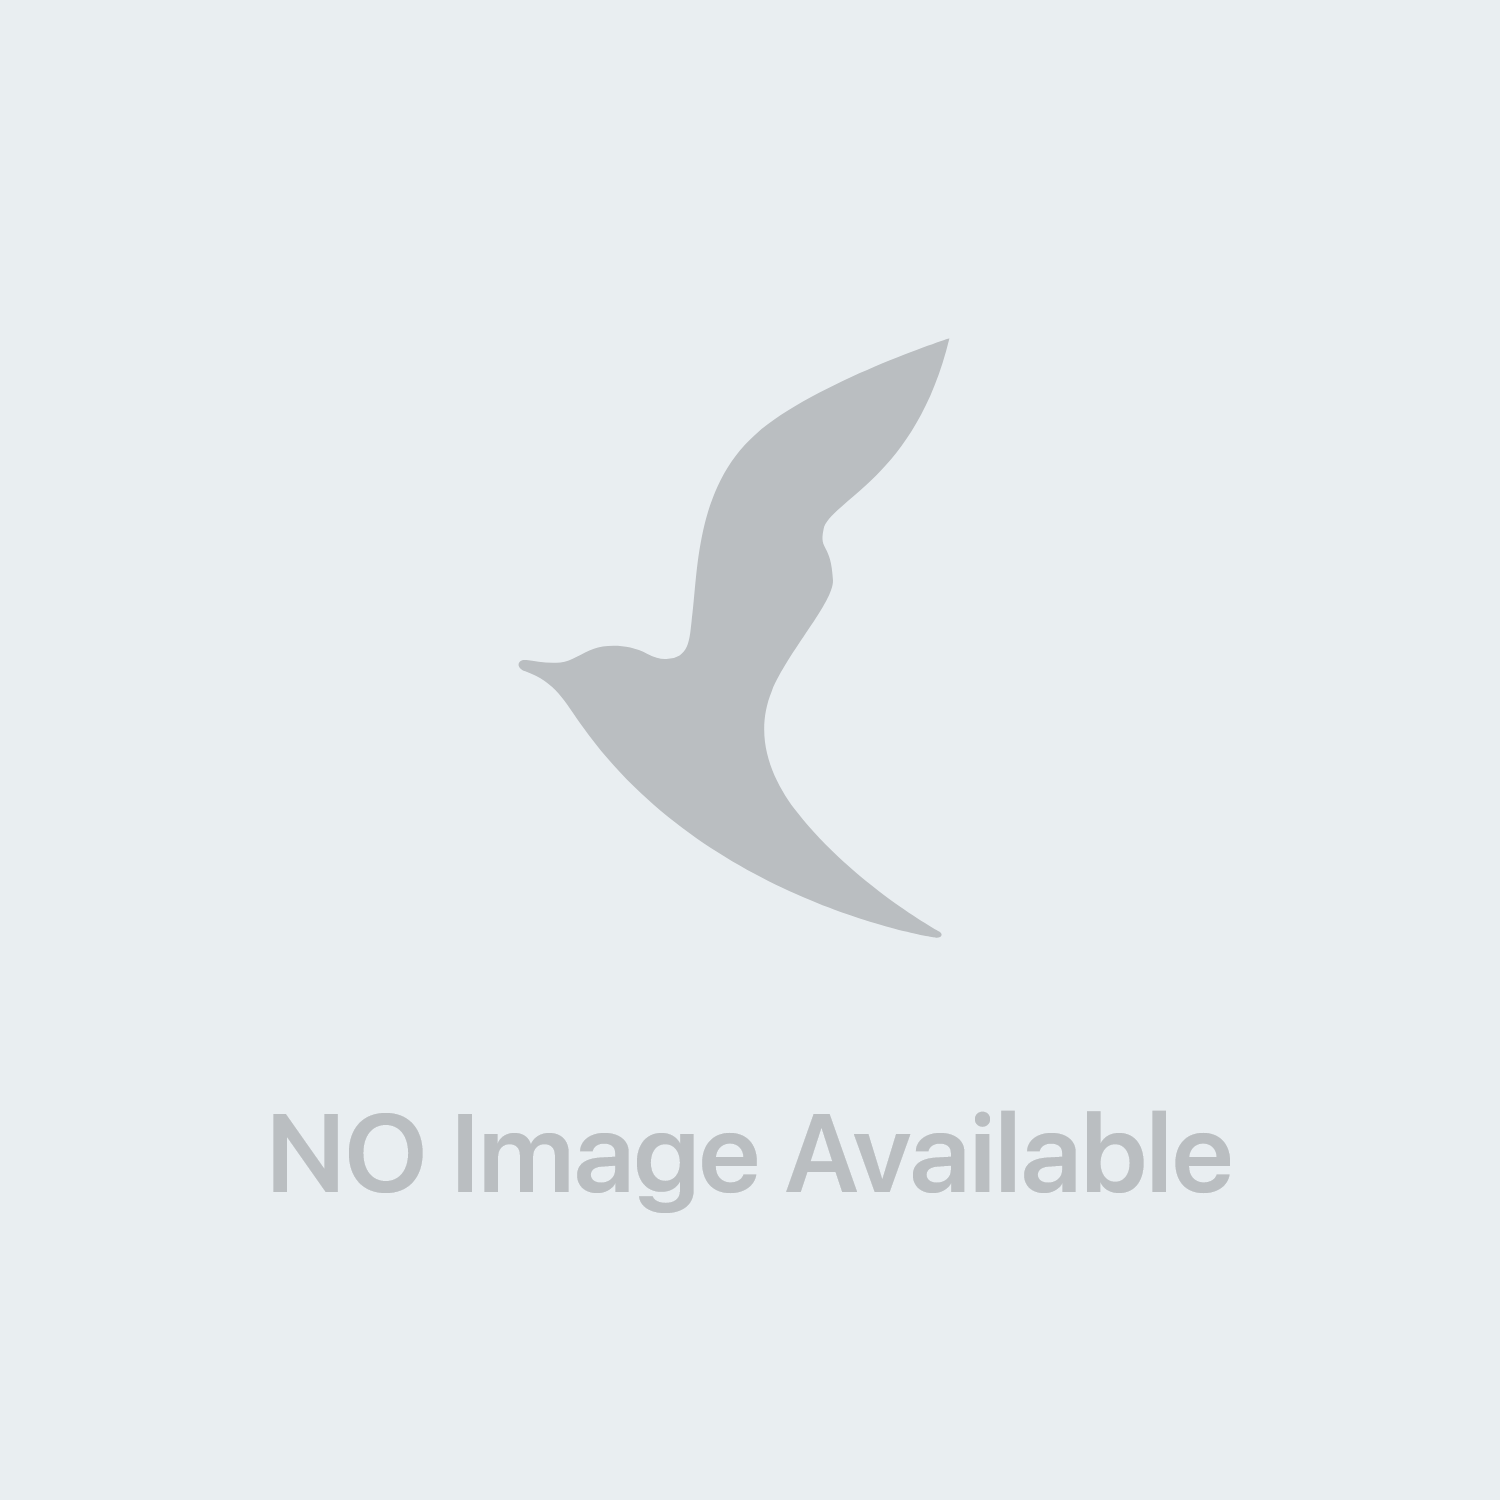 Esi The Verde Concentrato Drenante 60 Capsule 500mg